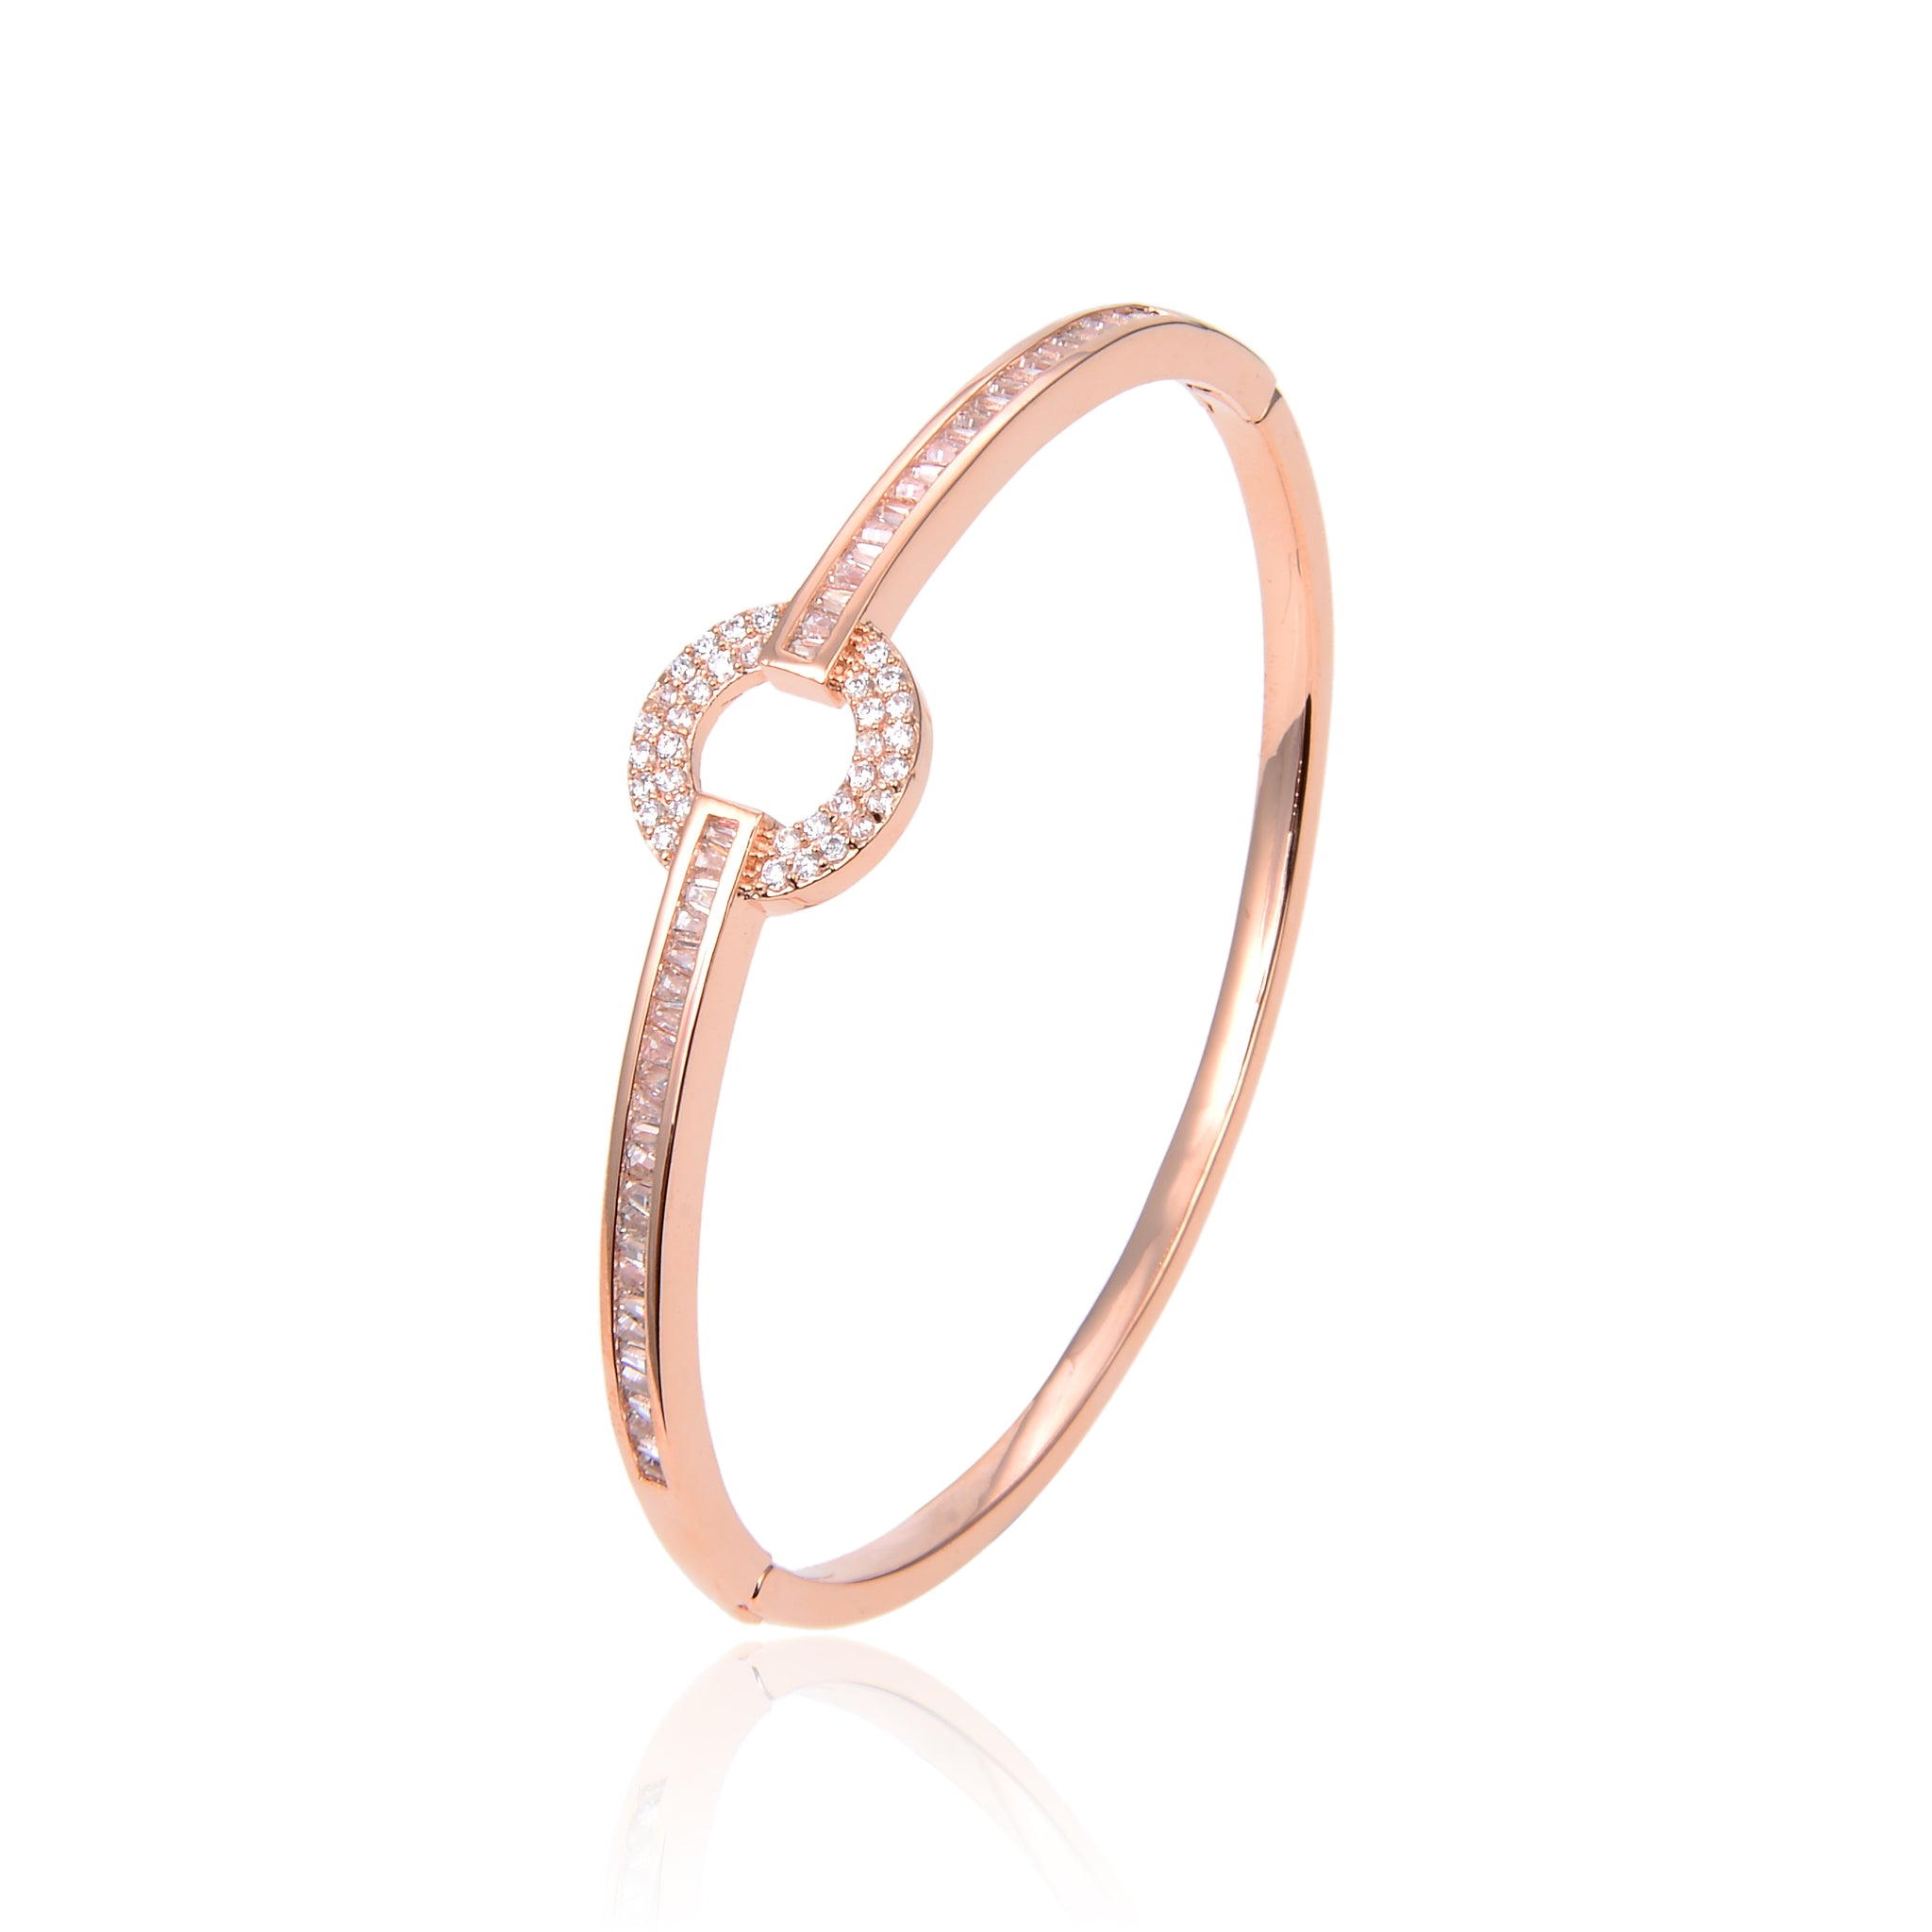 Rose Gold Plated CZ Cubic Zirconia Bracelet, Rose Gold Zircon Bracelet